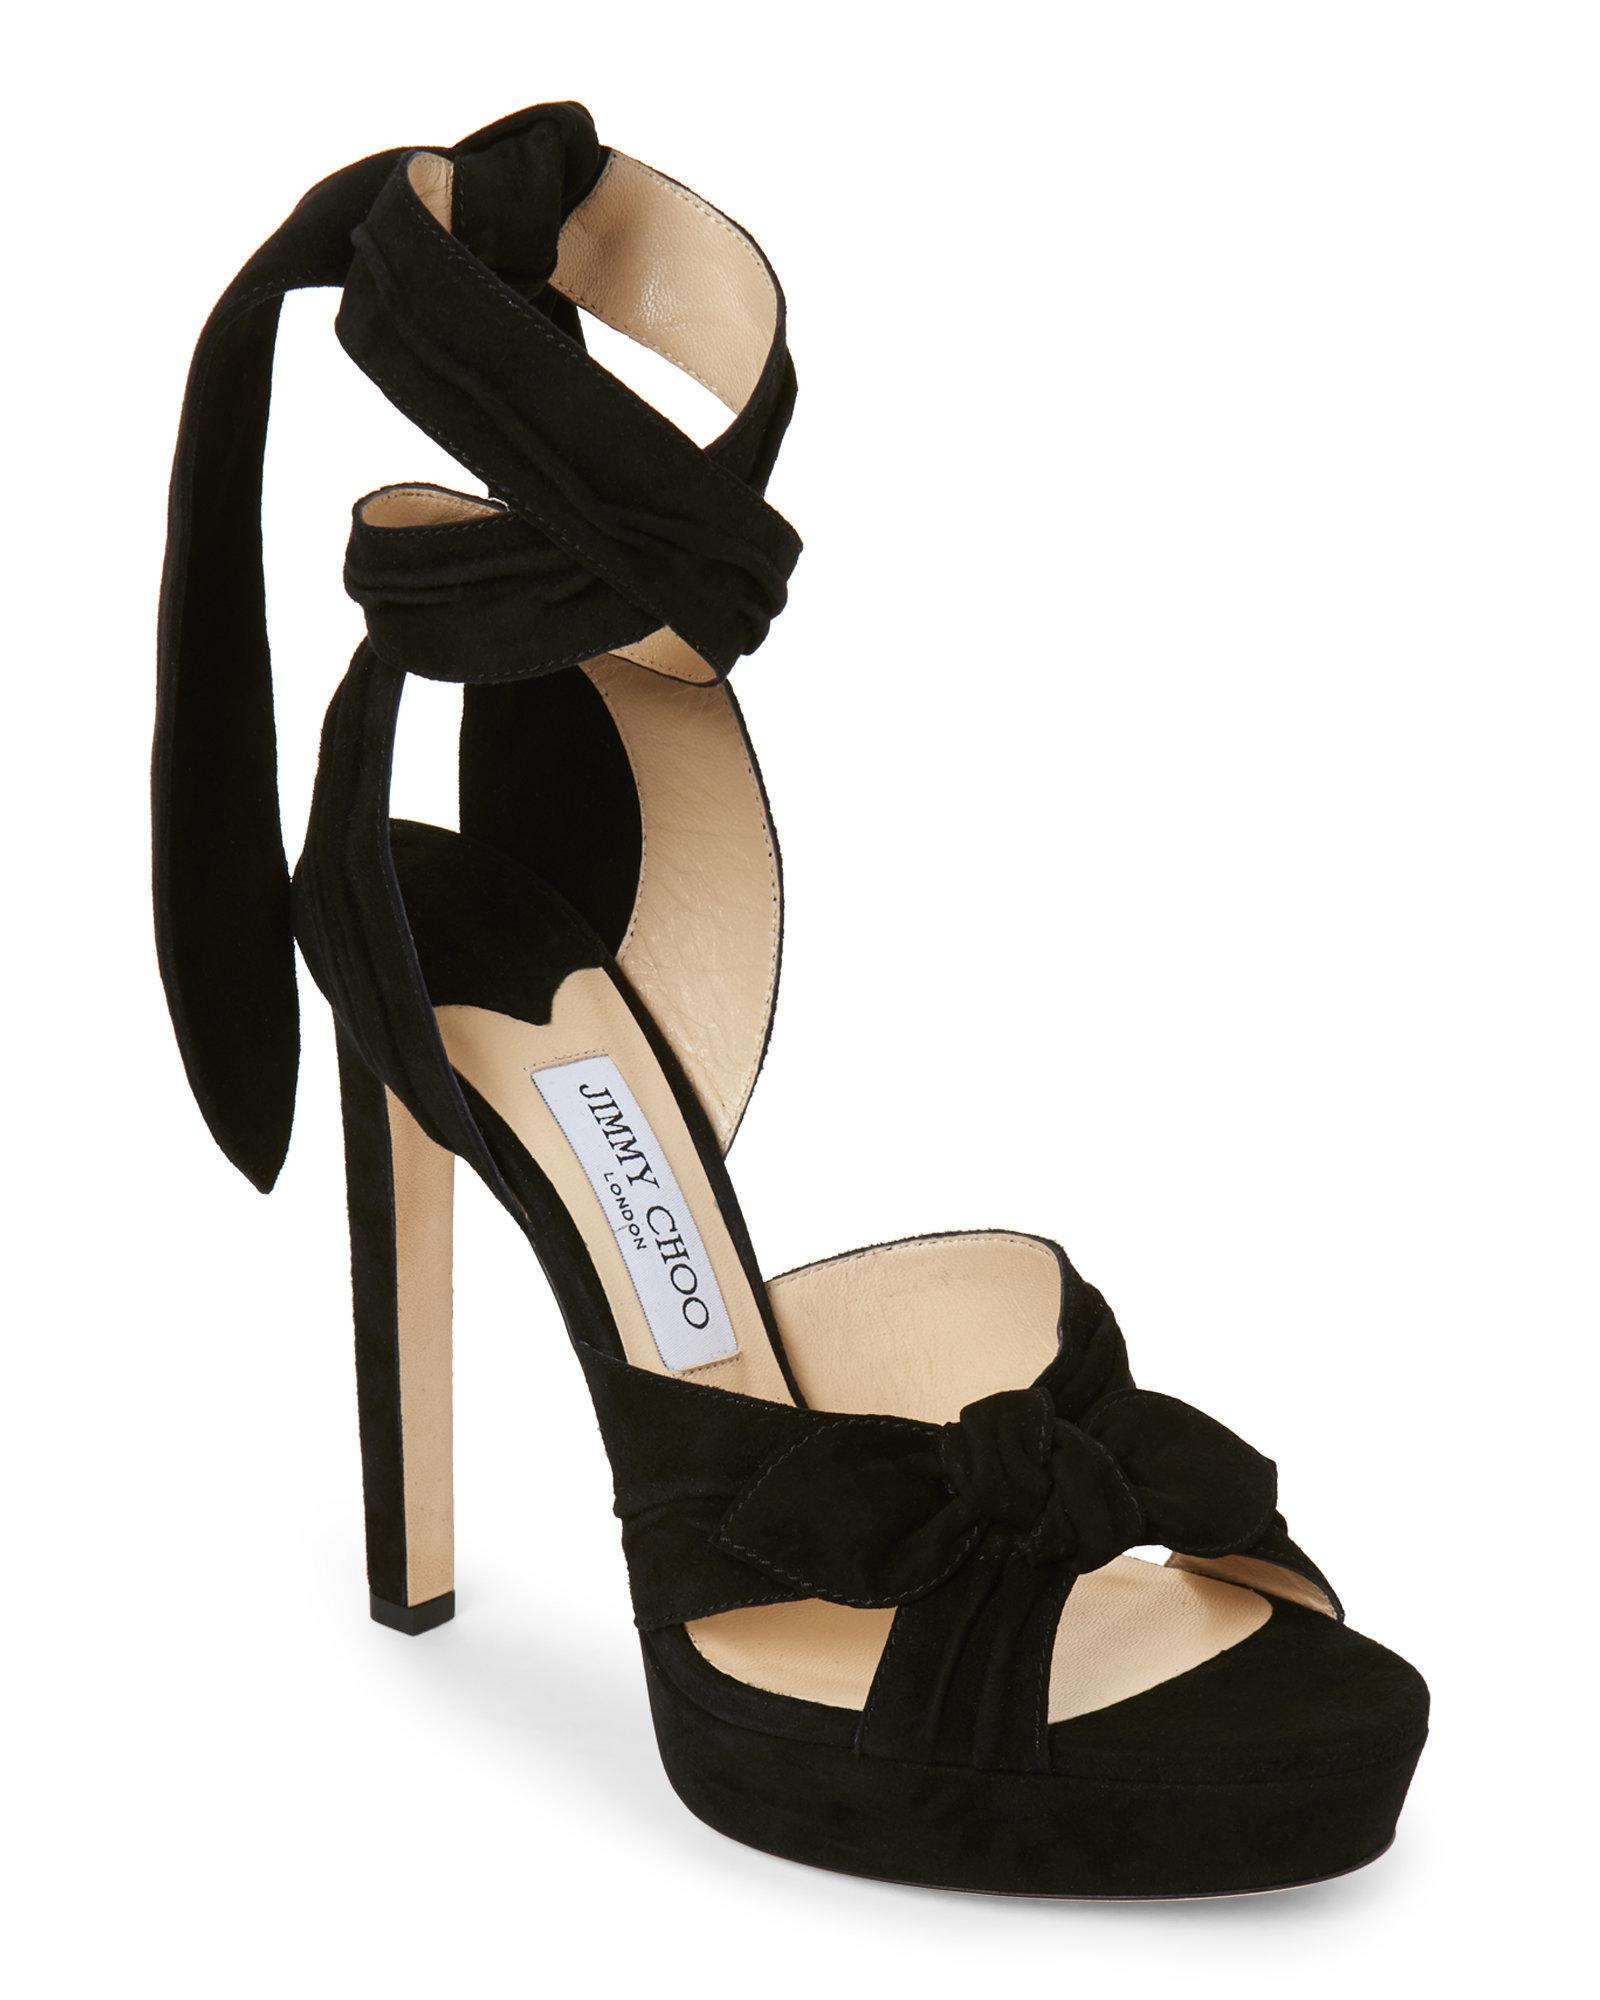 e78015b79c7 Lyst - Jimmy Choo Black Vixen Ankle Wrap Platform Sandals in Black